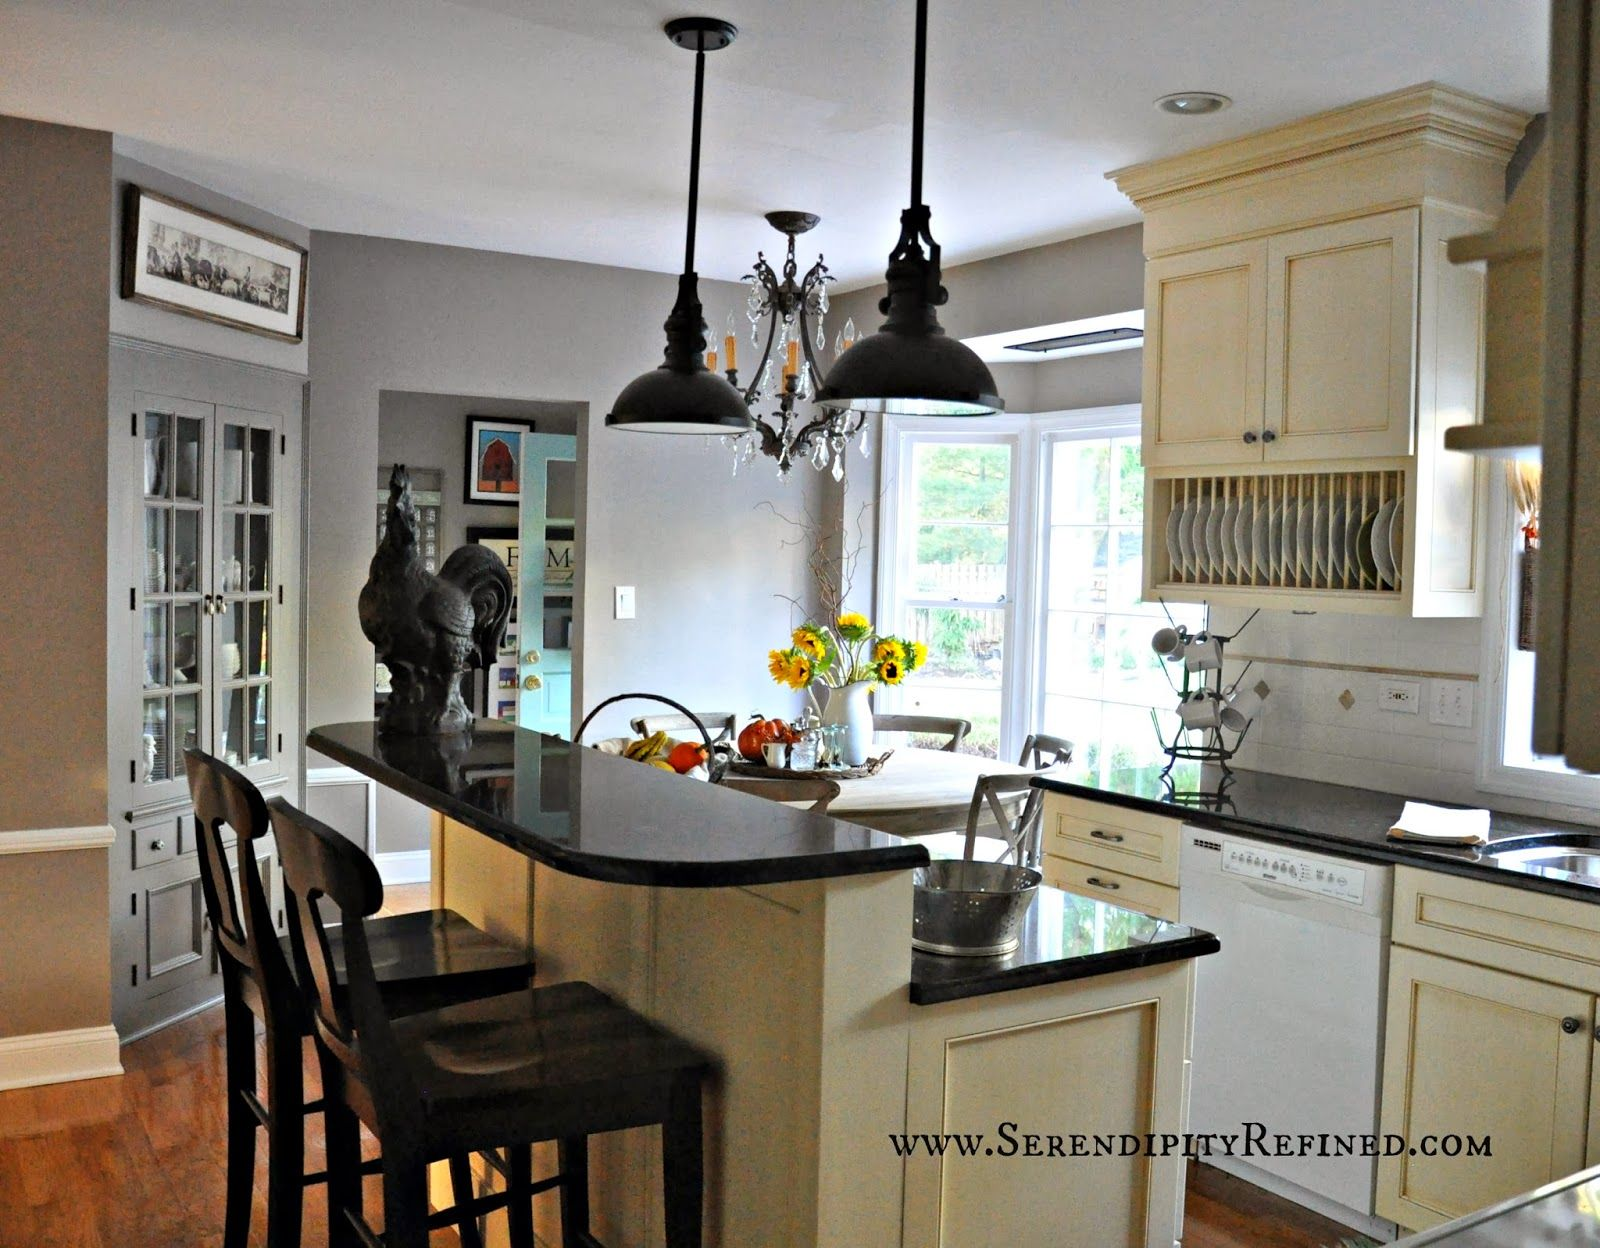 Serendipity refined french farm house kitchen progress paint and